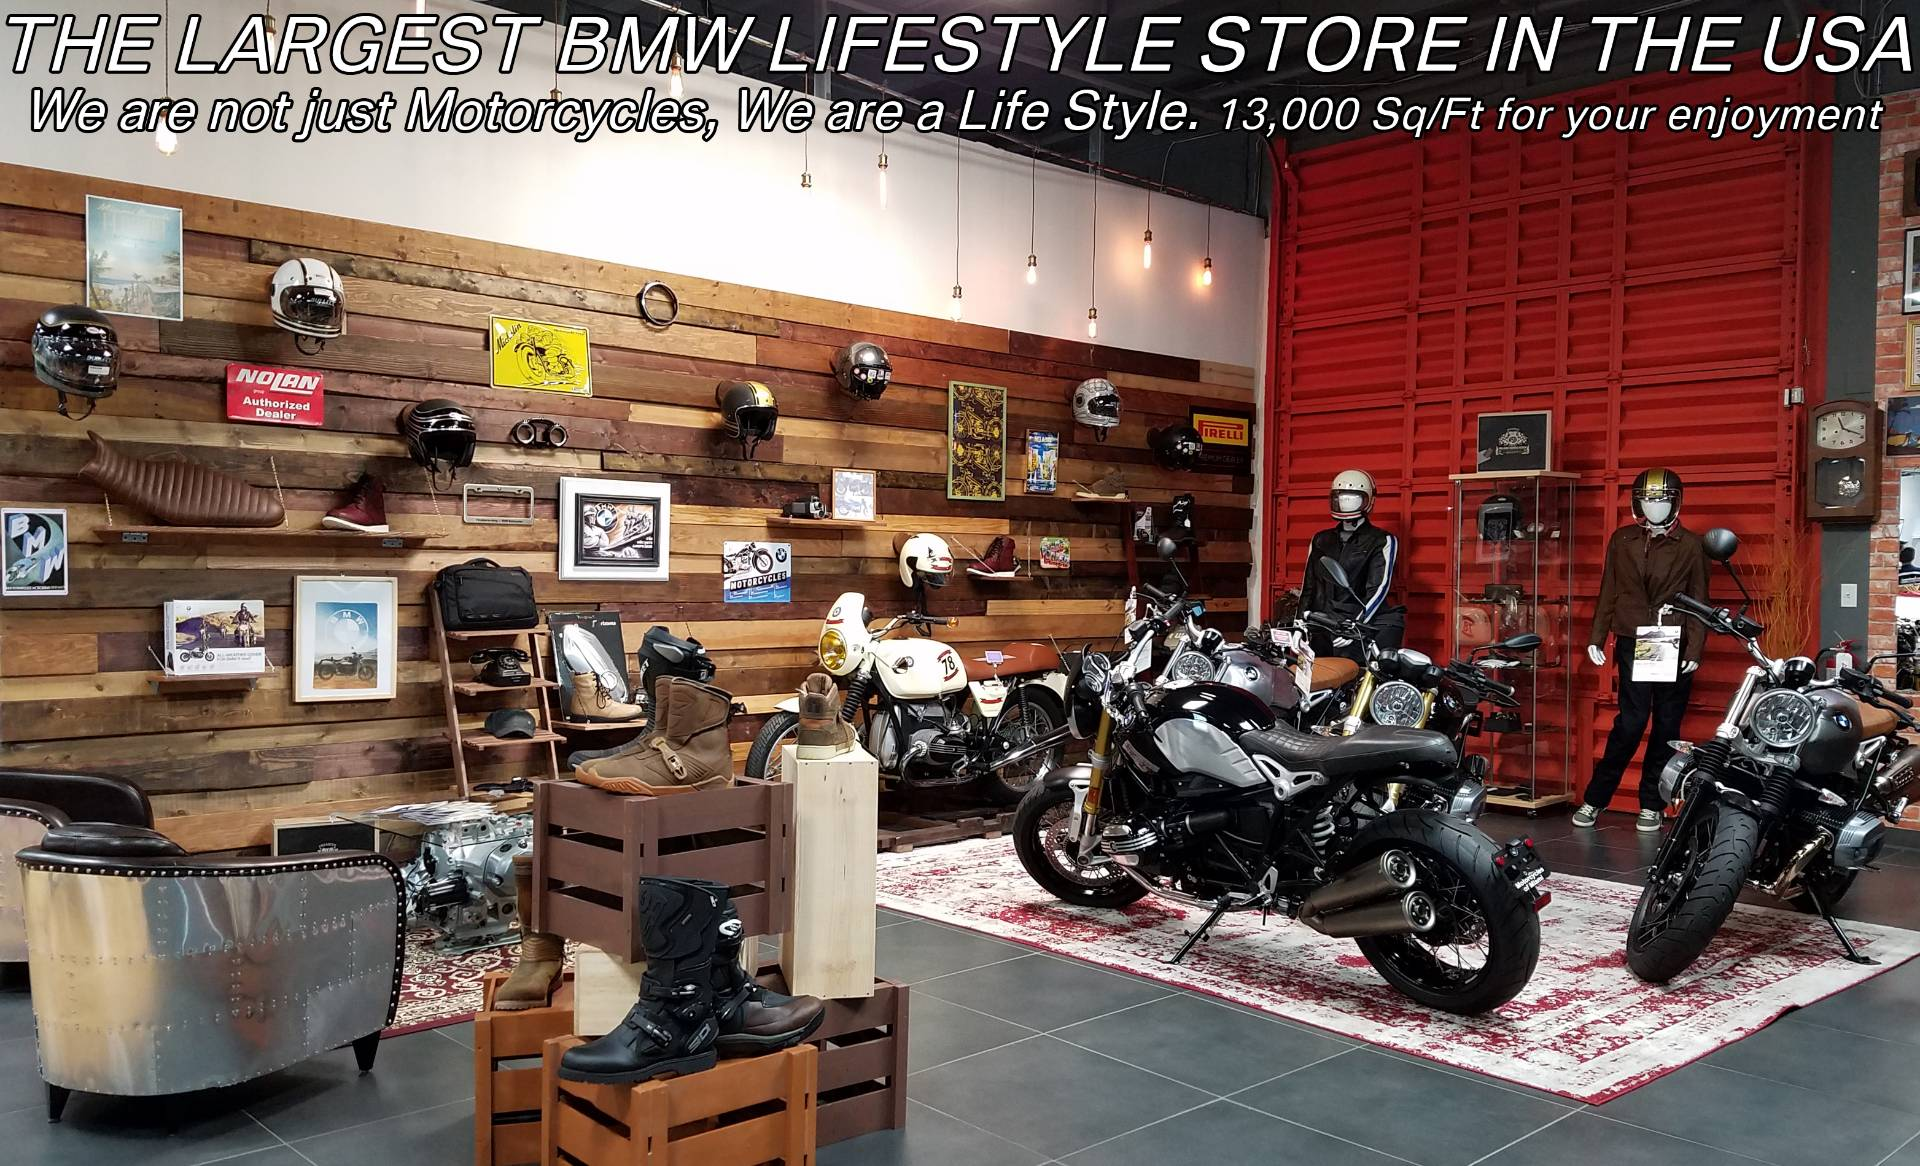 New 2019 BMW R nine T for sale, BMW R nineT for sale, BMW Motorcycle RnineT, BMW Motorcycles of Miami, Motorcycles of Miami, Motorcycles Miami - Photo 34